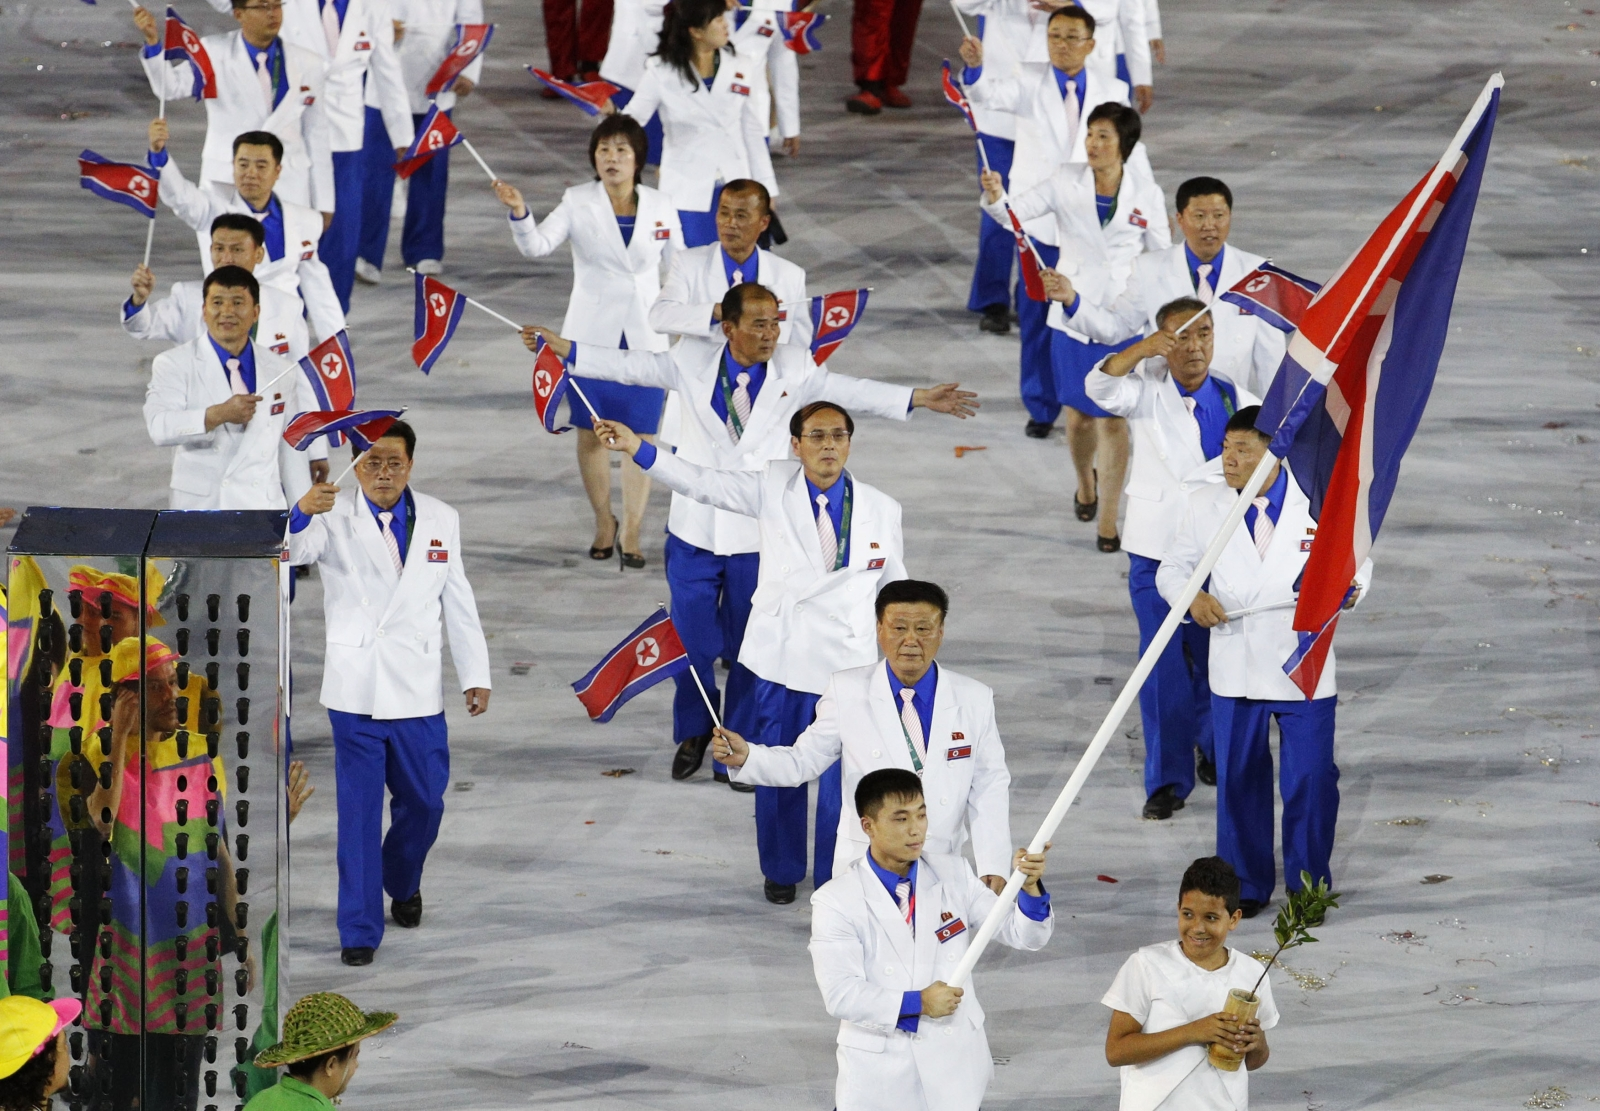 North Korean athletes at Rio 2016 Olympics